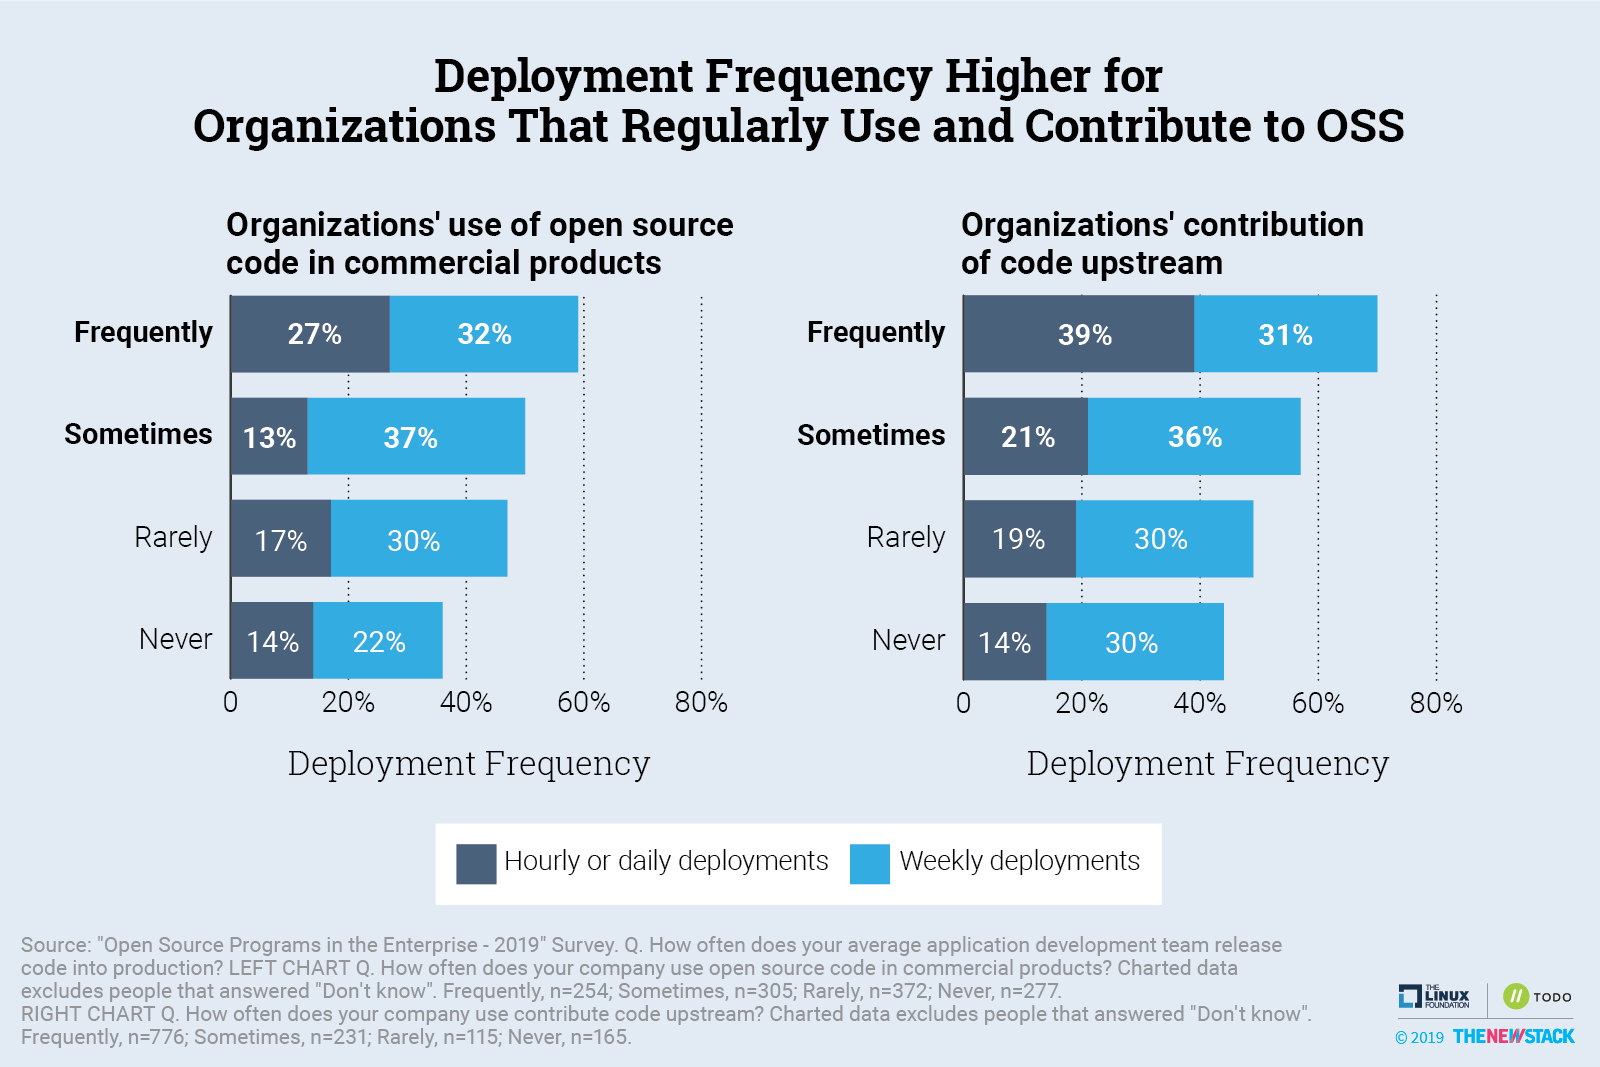 Deployment Frequency Higher for Organization That Regularly Use and Contribute to OSS